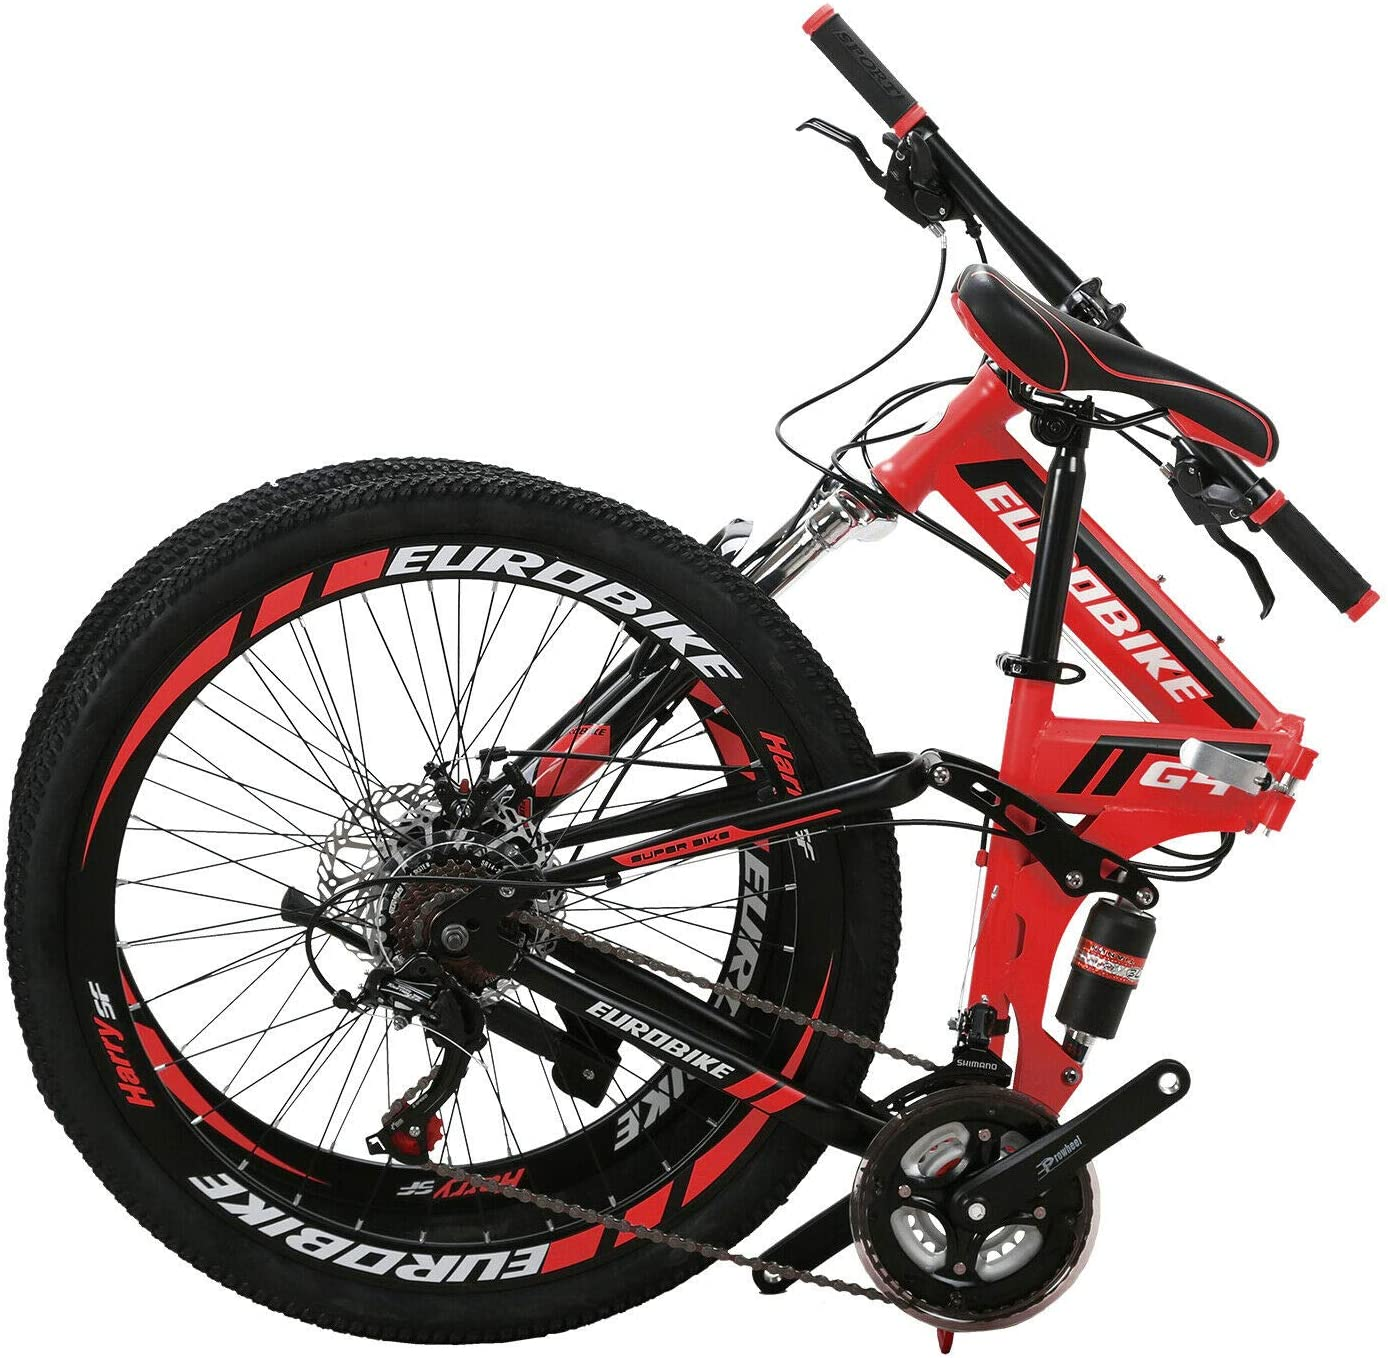 Eurobike 26 Inch Mountain Bike Folding Bicycle